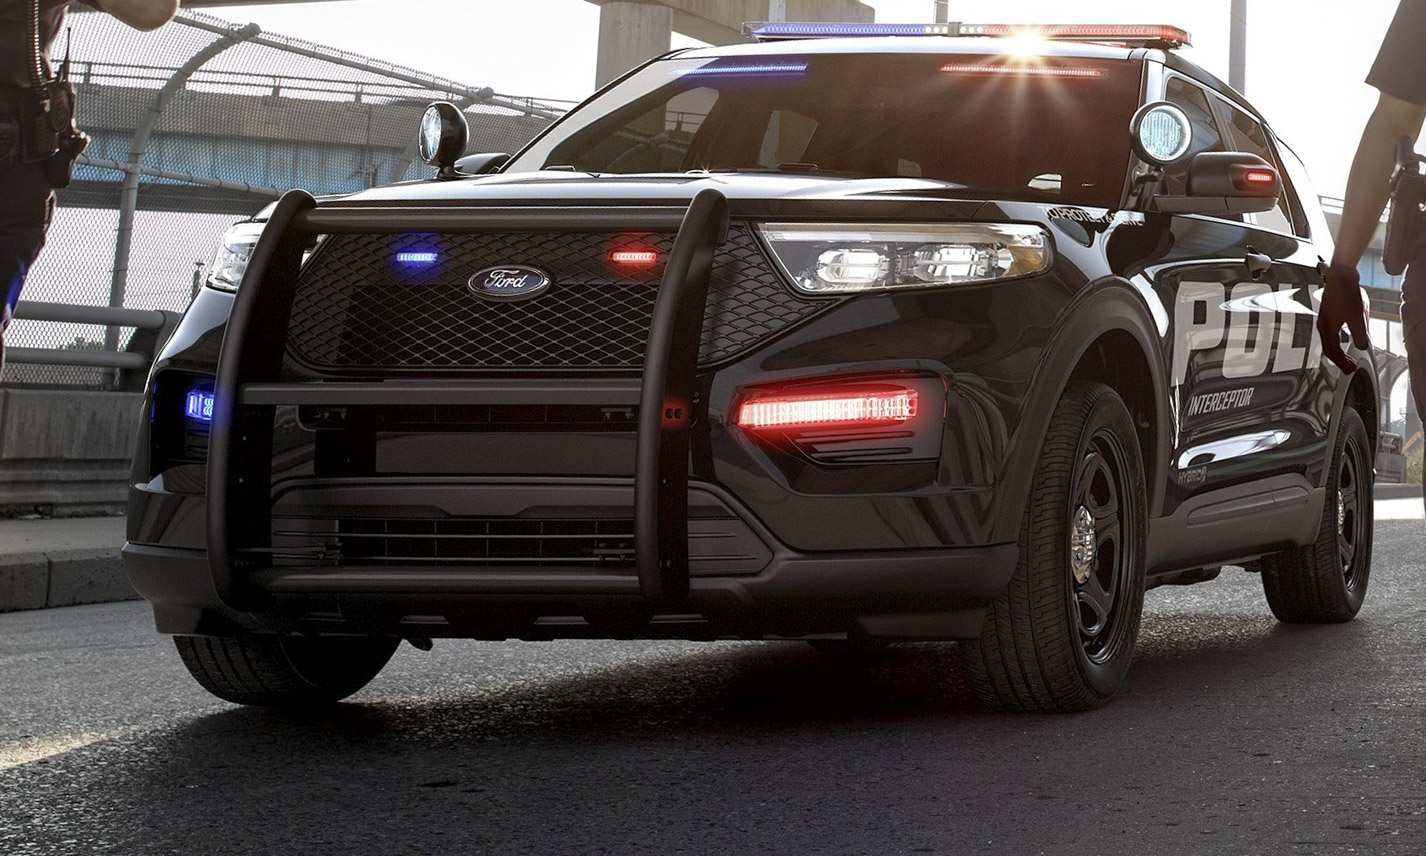 23 All New 2020 Ford Police Interceptor Utility New Review